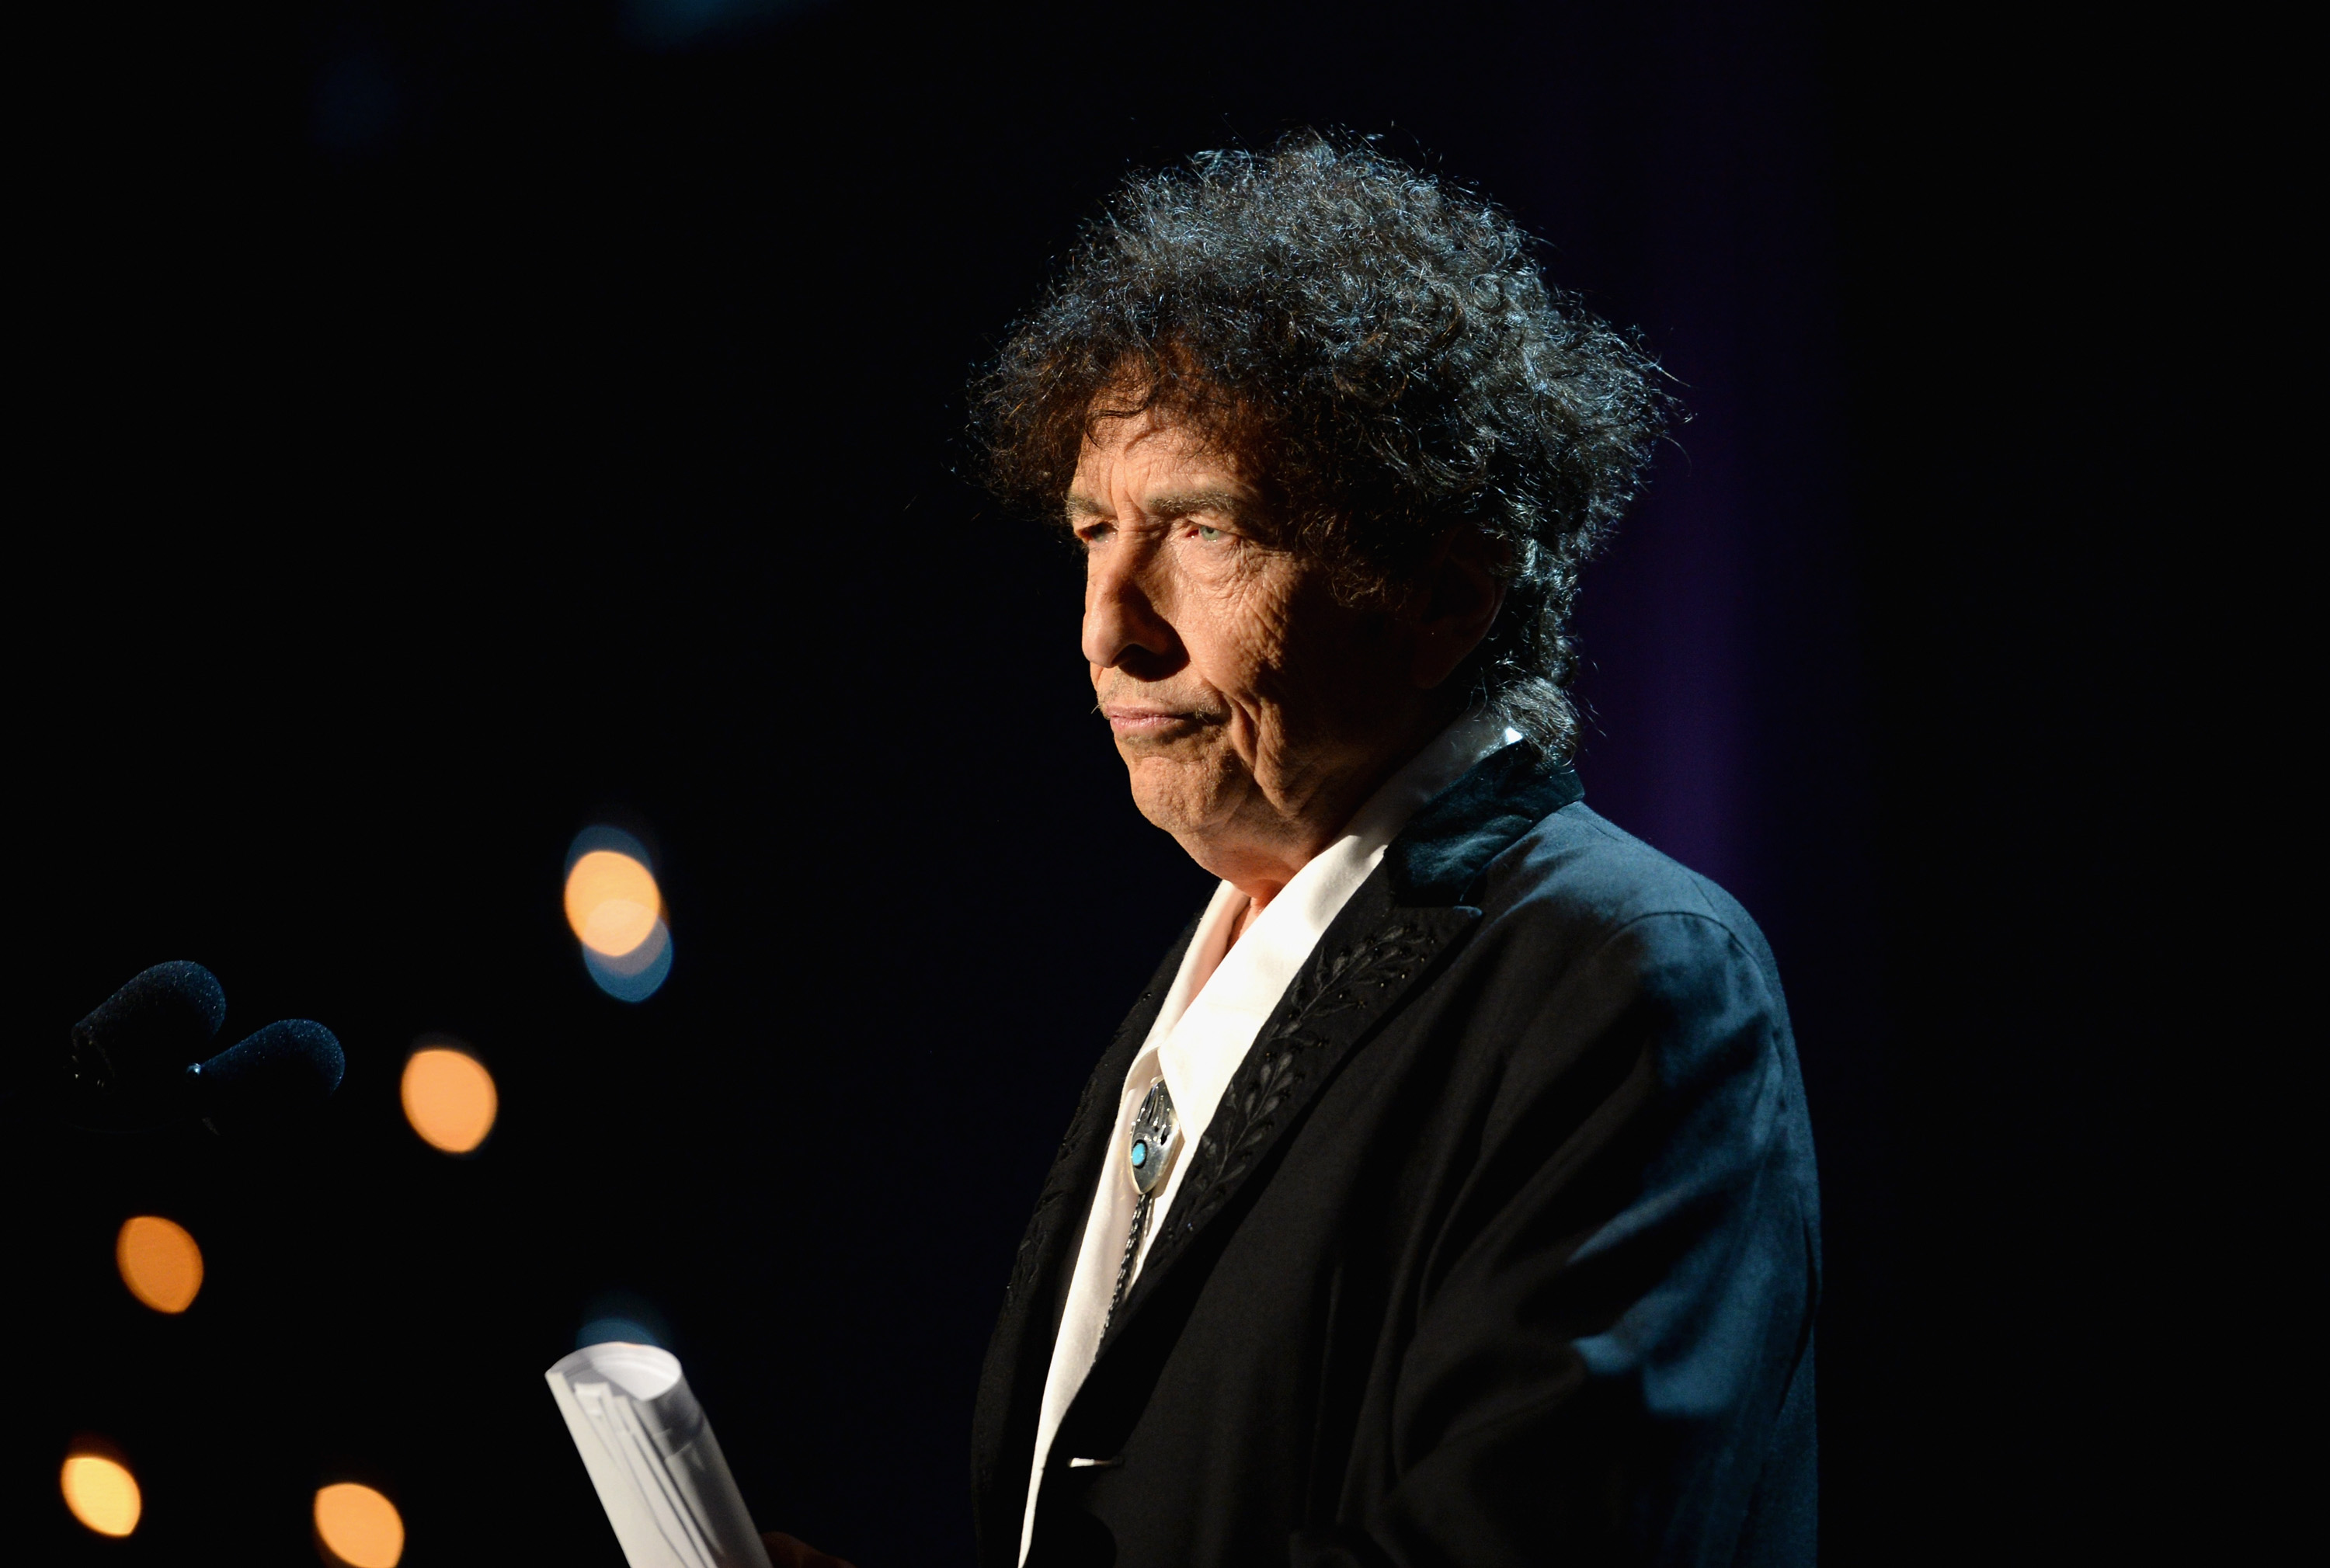 Honoree Bob Dylan speaks onstage at the 25th anniversary MusiCares 2015 Person Of The Year Gala honoring Bob Dylan at the Los Angeles Convention Center on February 6, 2015 in Los Angeles, California. Michael Kovac—WireImage